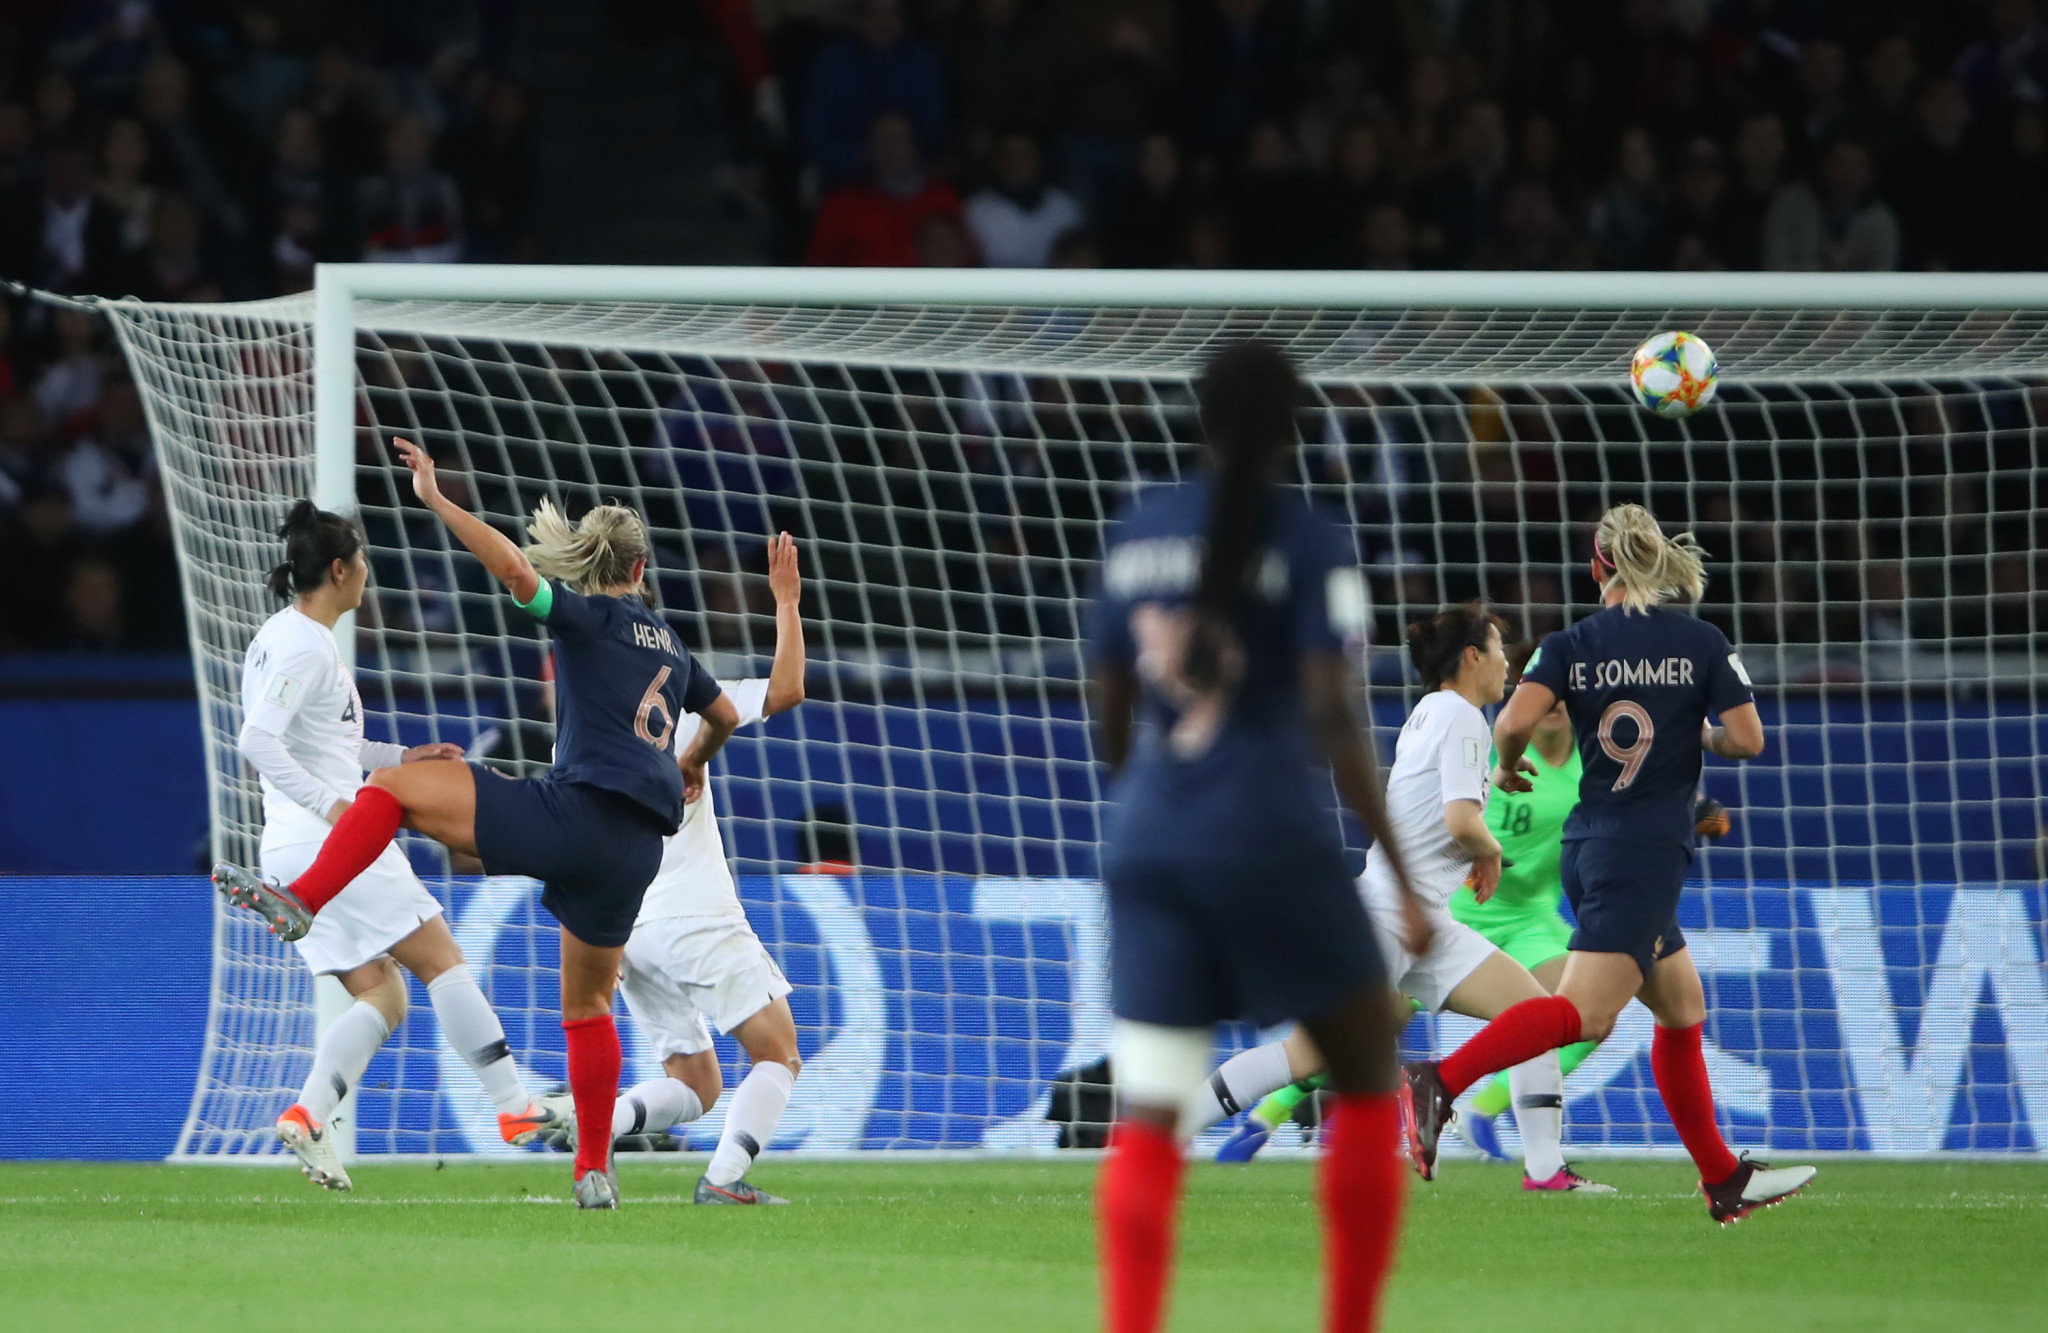 Amandine Henry was the scorer of the fourth goal in the 85th minute ©Getty Images